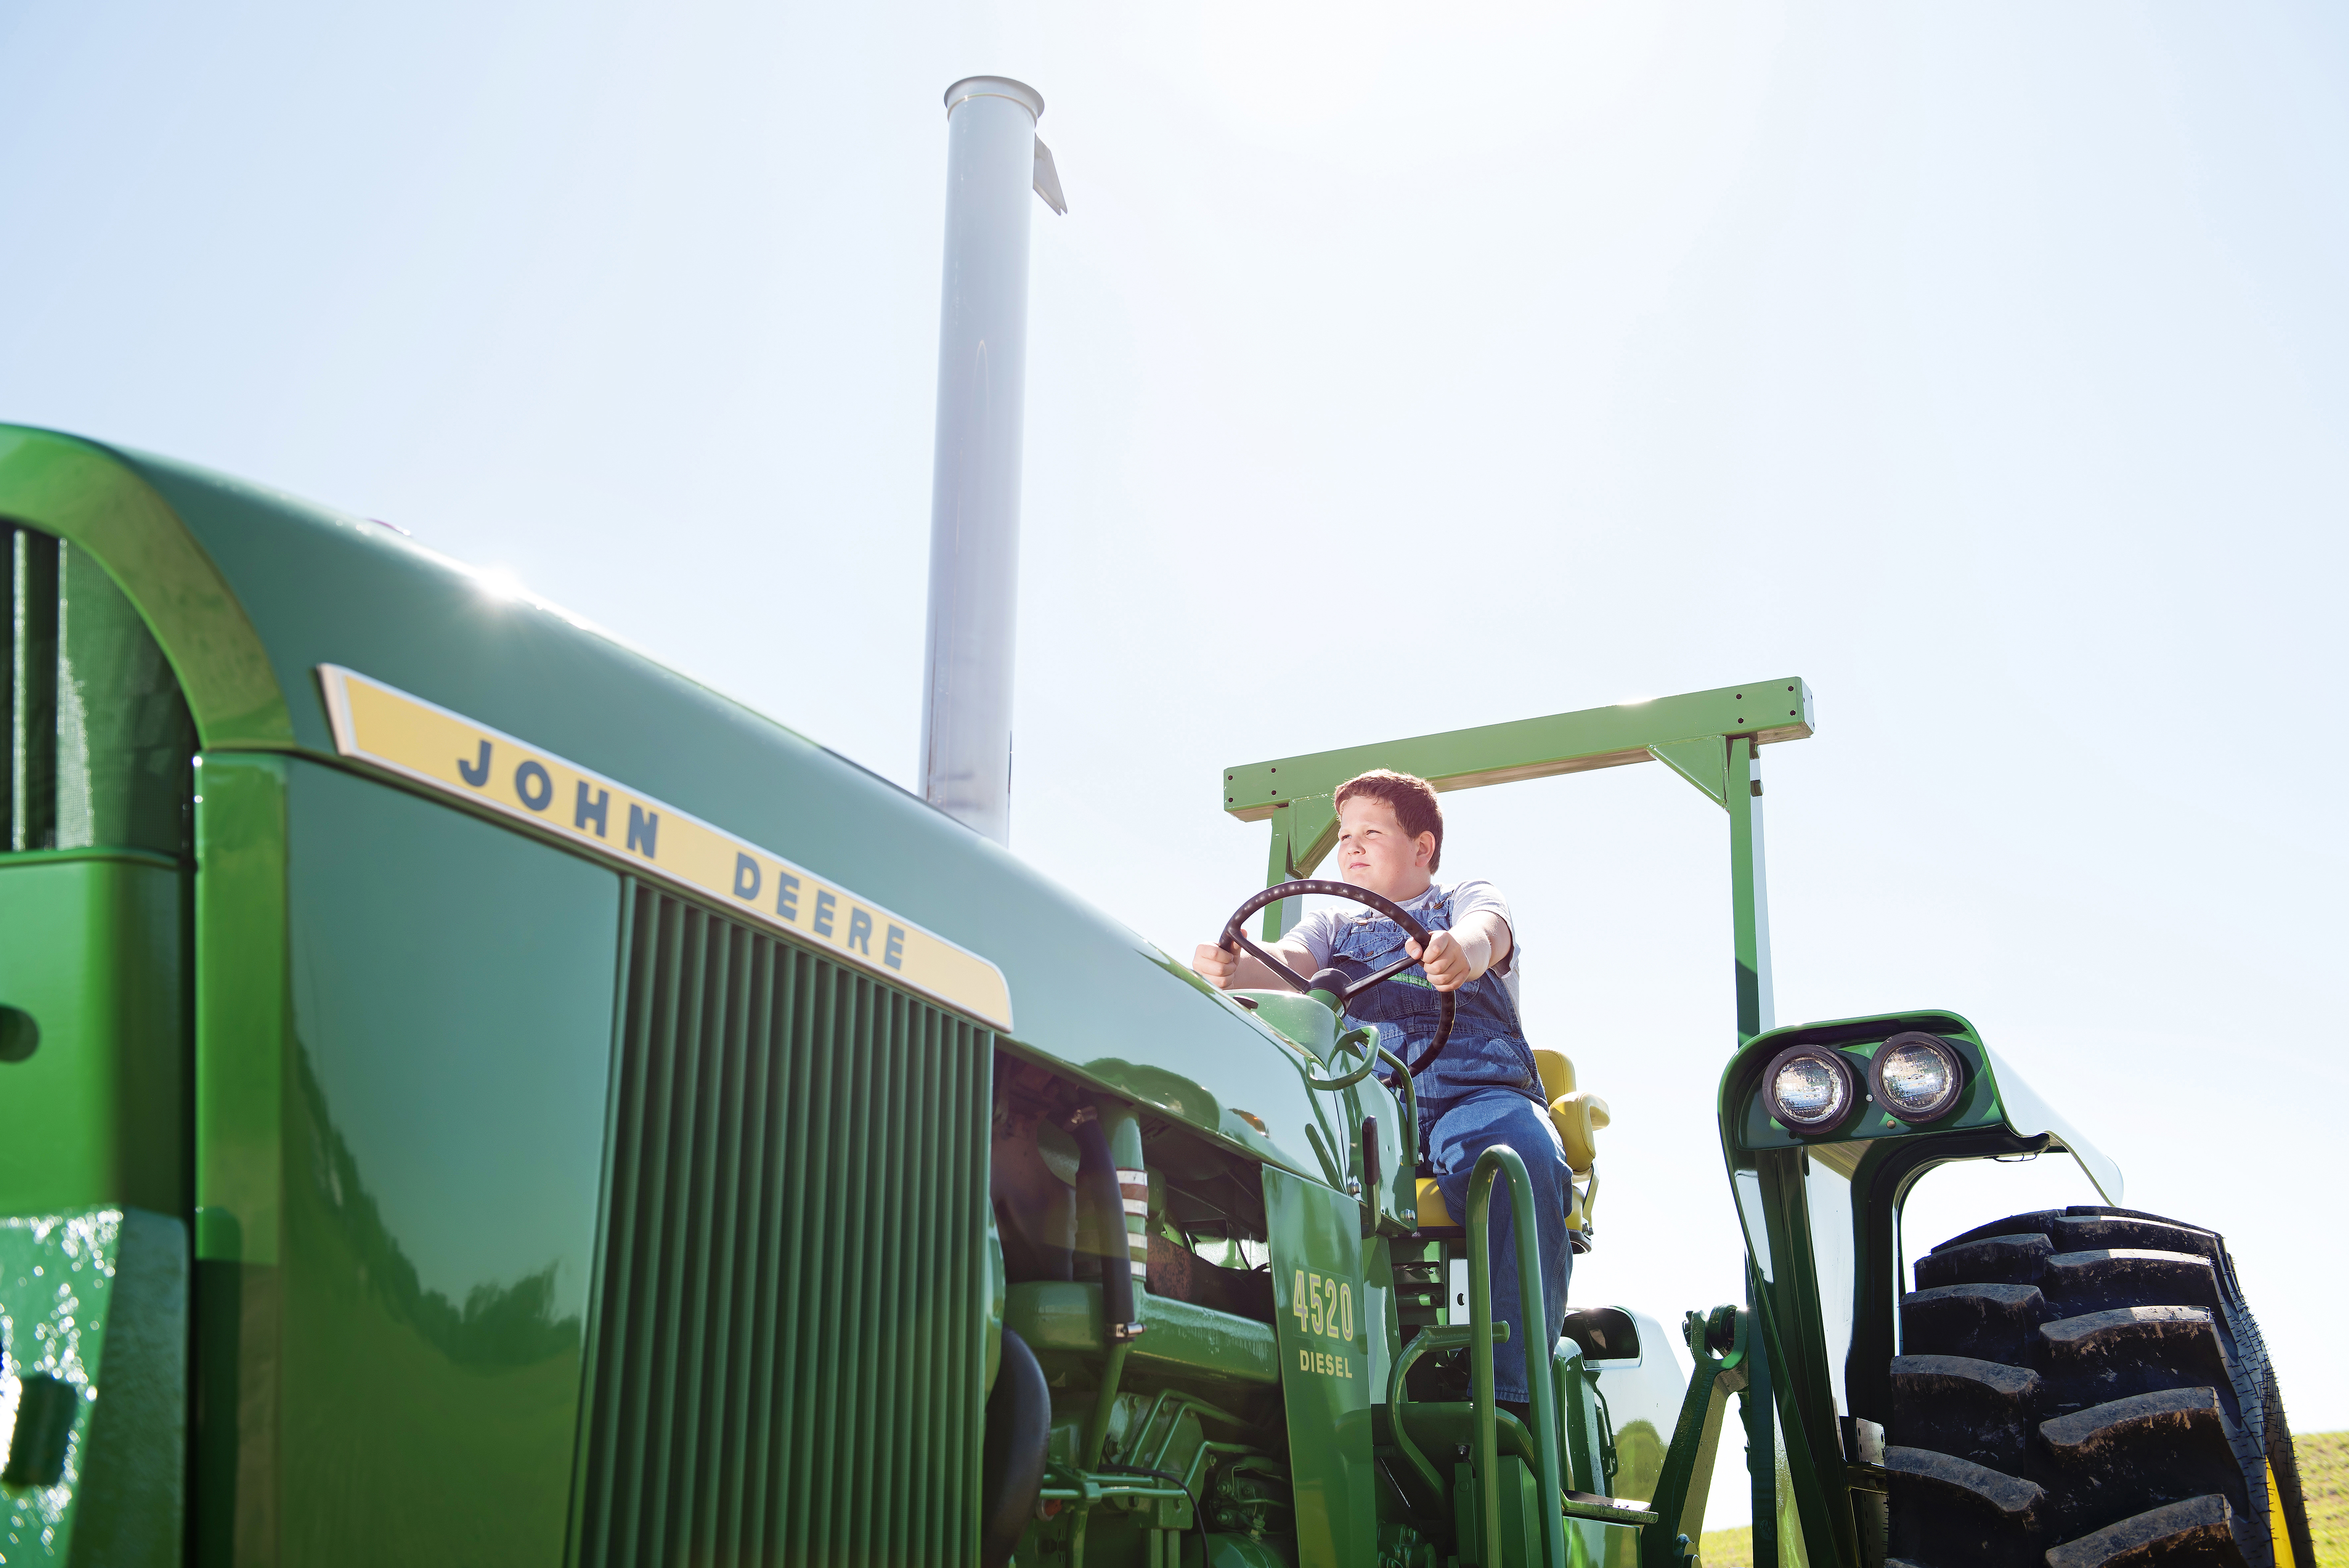 A boy plays on a tractor on a farm near Red Ring, Minnesota.